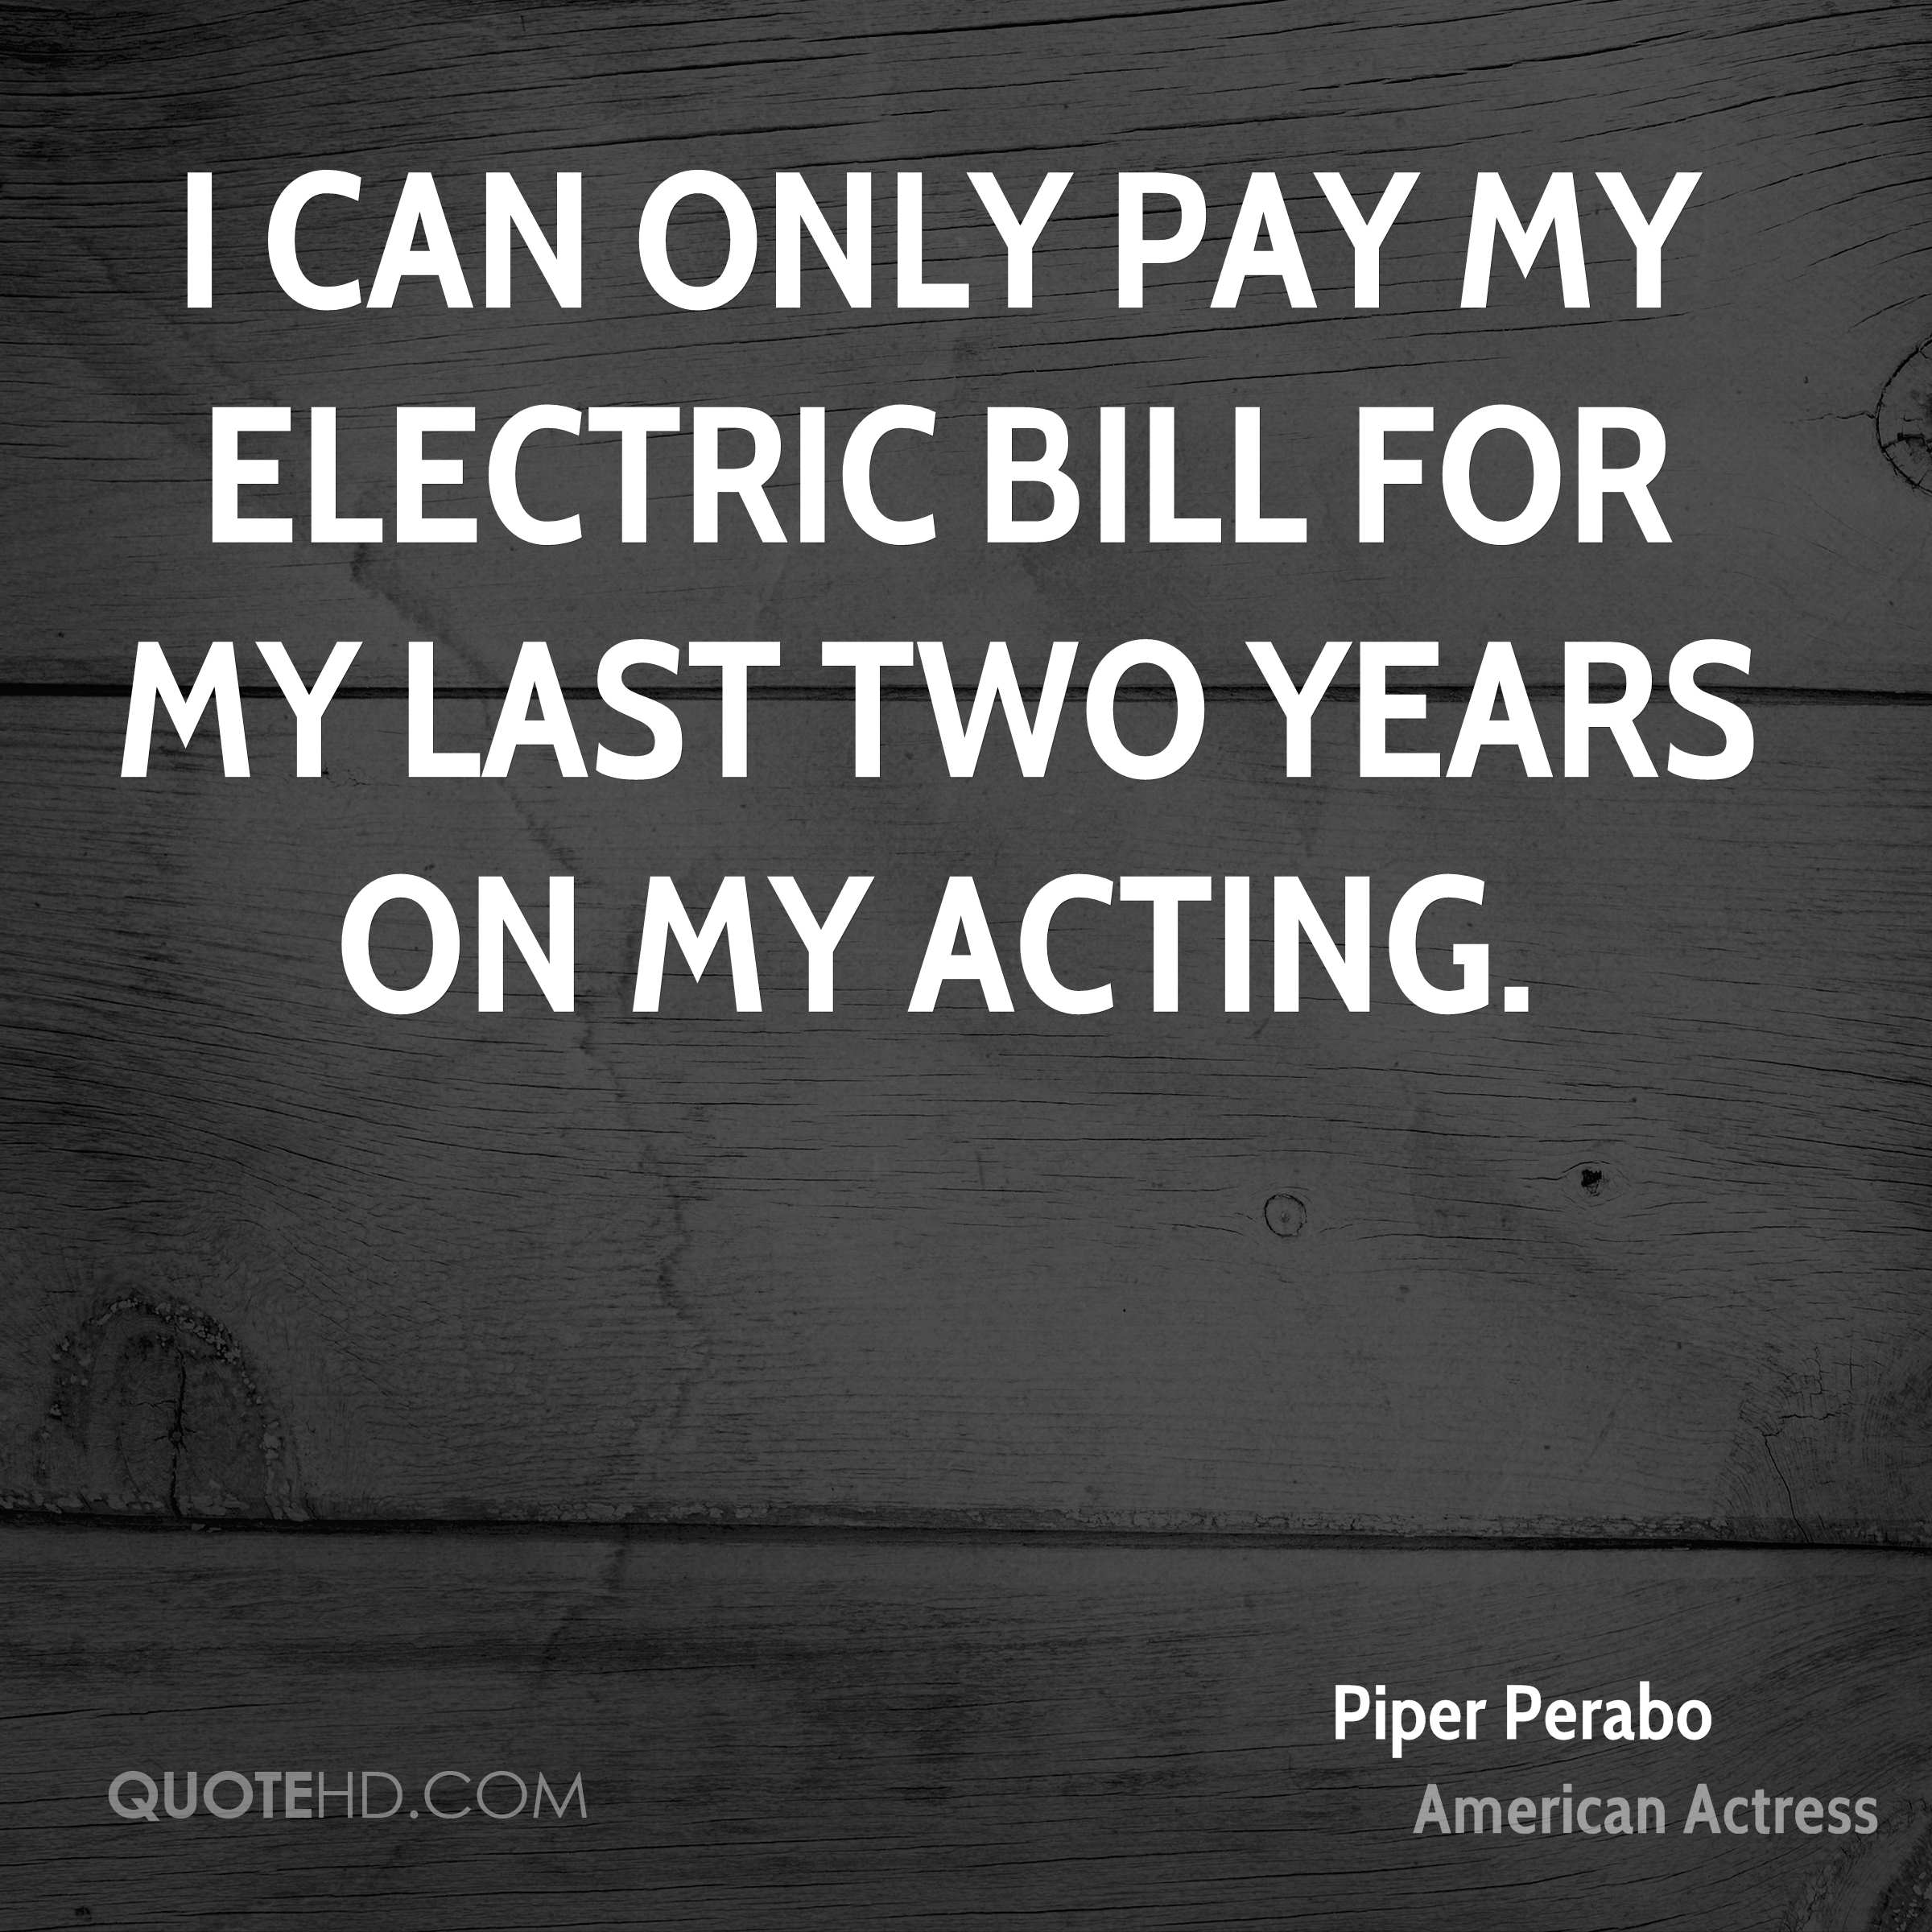 I can only pay my electric bill for my last two years on my acting.